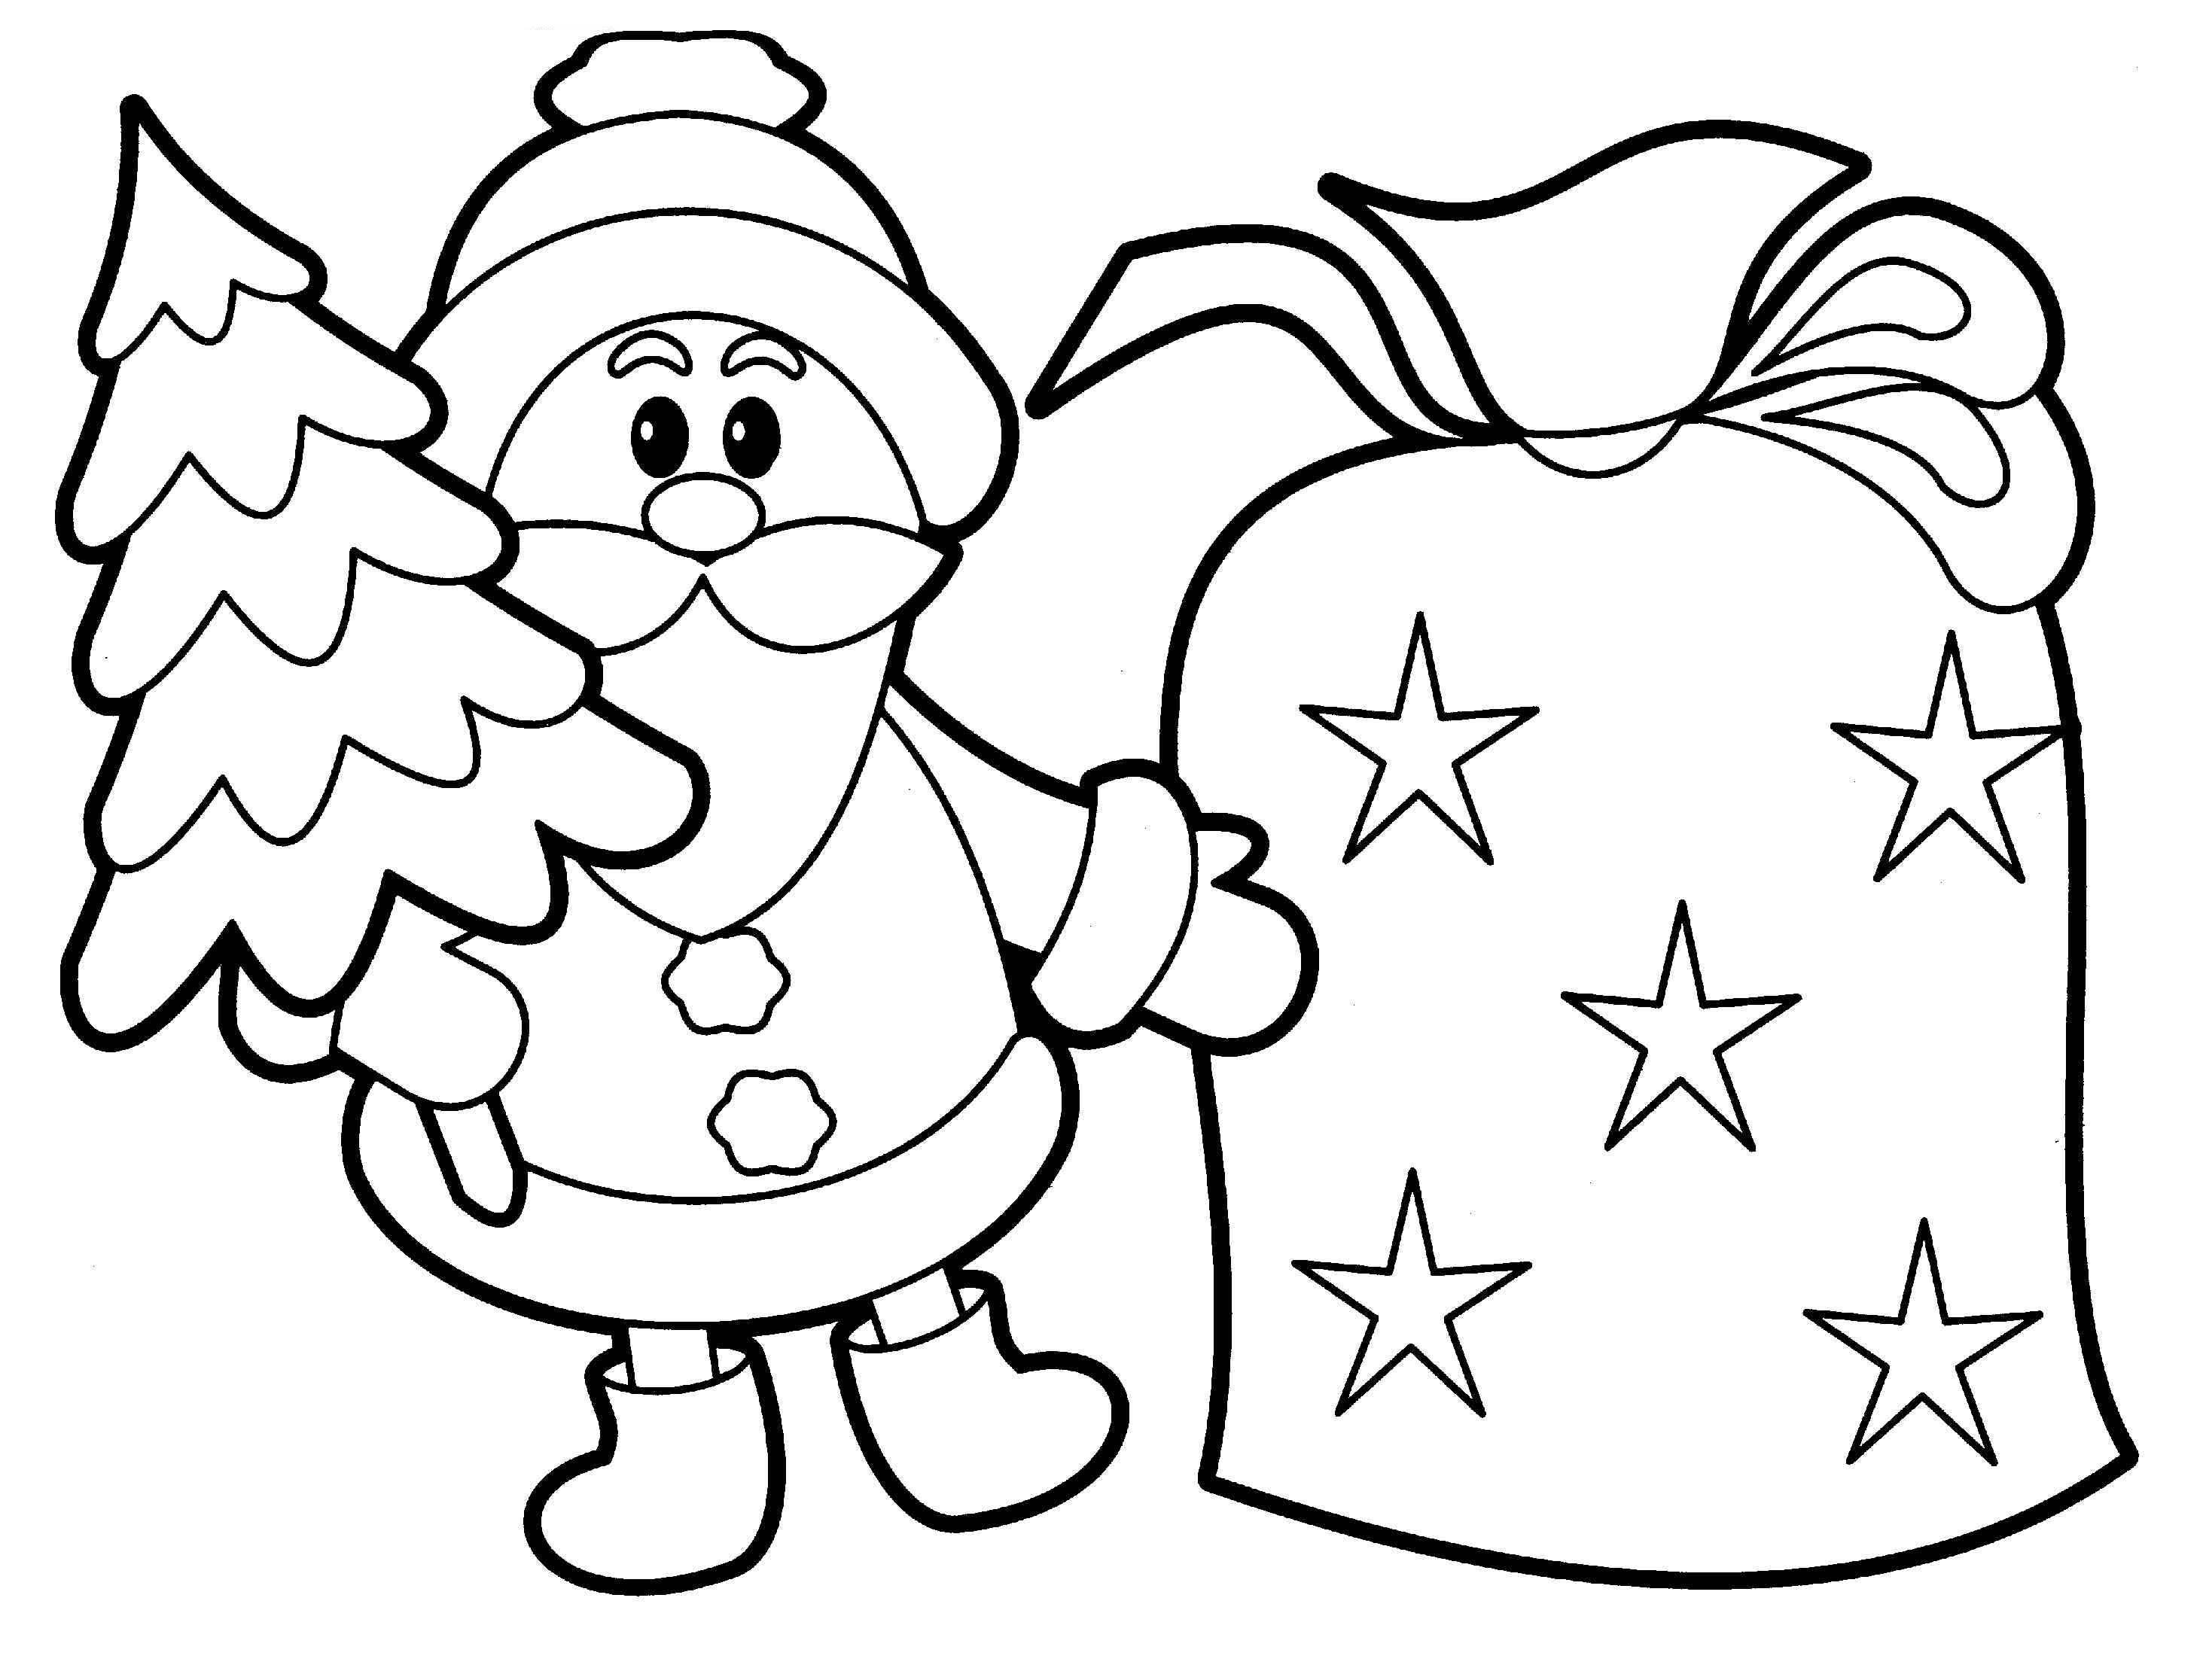 Easy preschool coloring pages for Preschool coloring pages